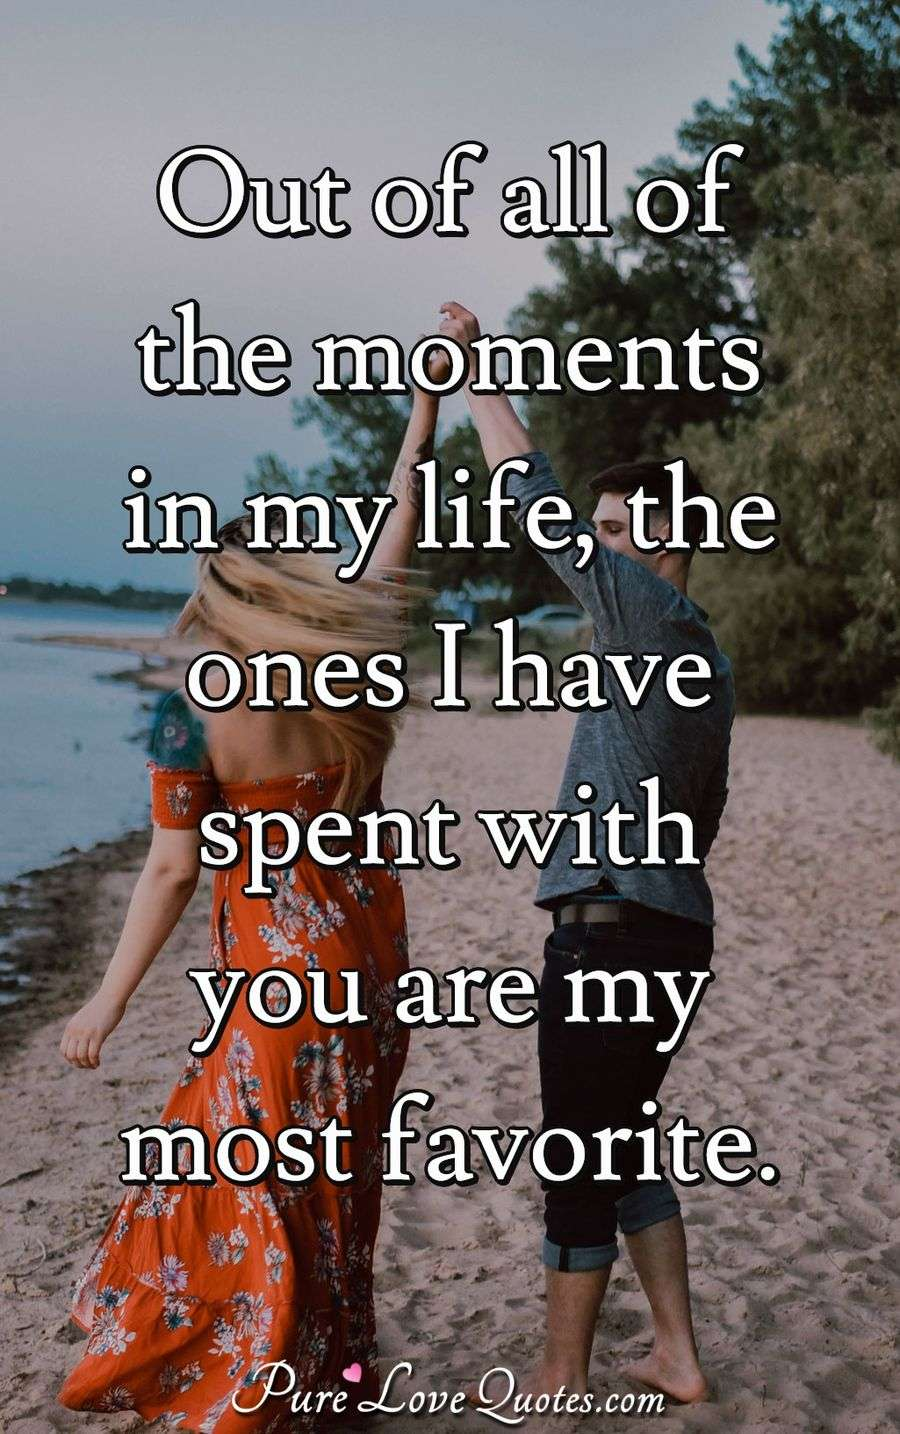 Out of all of the moments in my life, the ones I have spent with you are my most favorite. - Anonymous